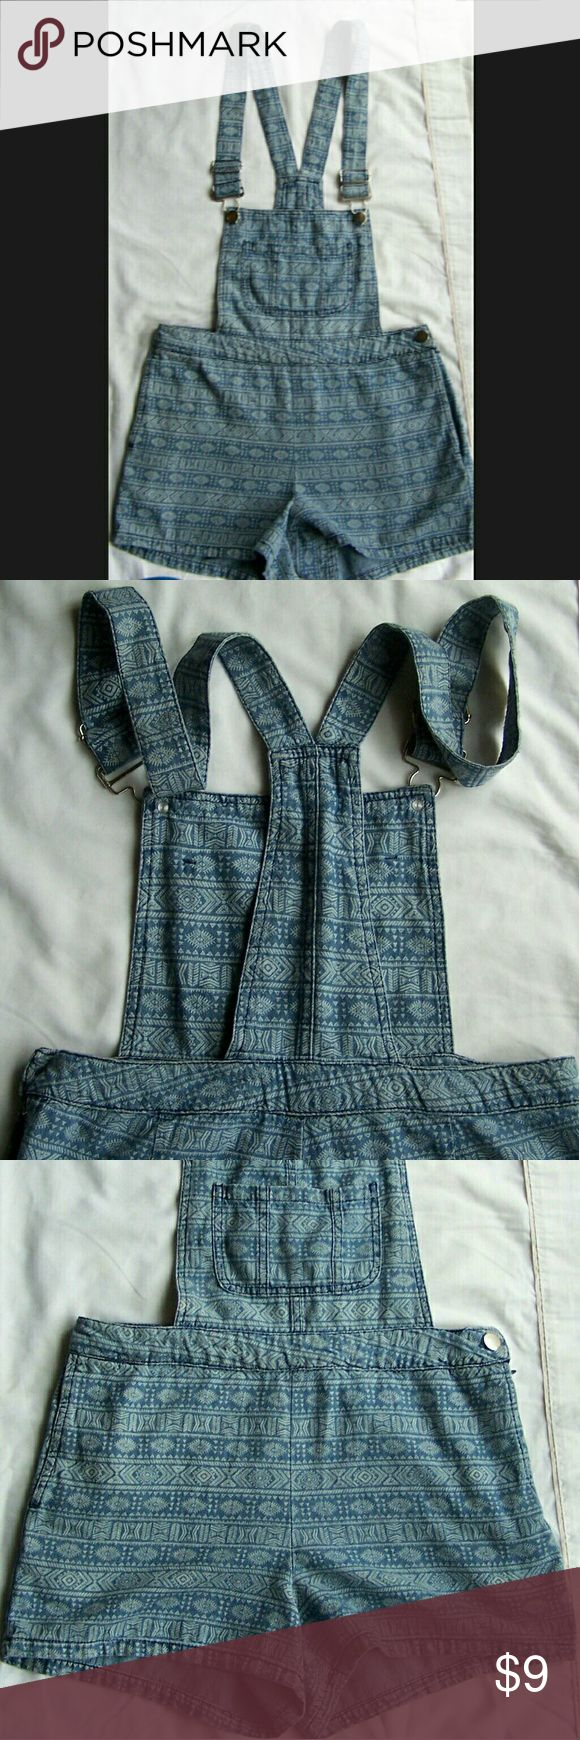 Aztec Print Denim Overall Shorts | Romper Very soft denim with a bit of stretch, lightly faded.  Size medium, roughly a size 2 to 4 in juniors.  Very cute and cozy, great condition.  OFFERS AND BUNDLES ALWAYS WELCOMED!  HAPPY POSHING! Love by Chesley Shorts